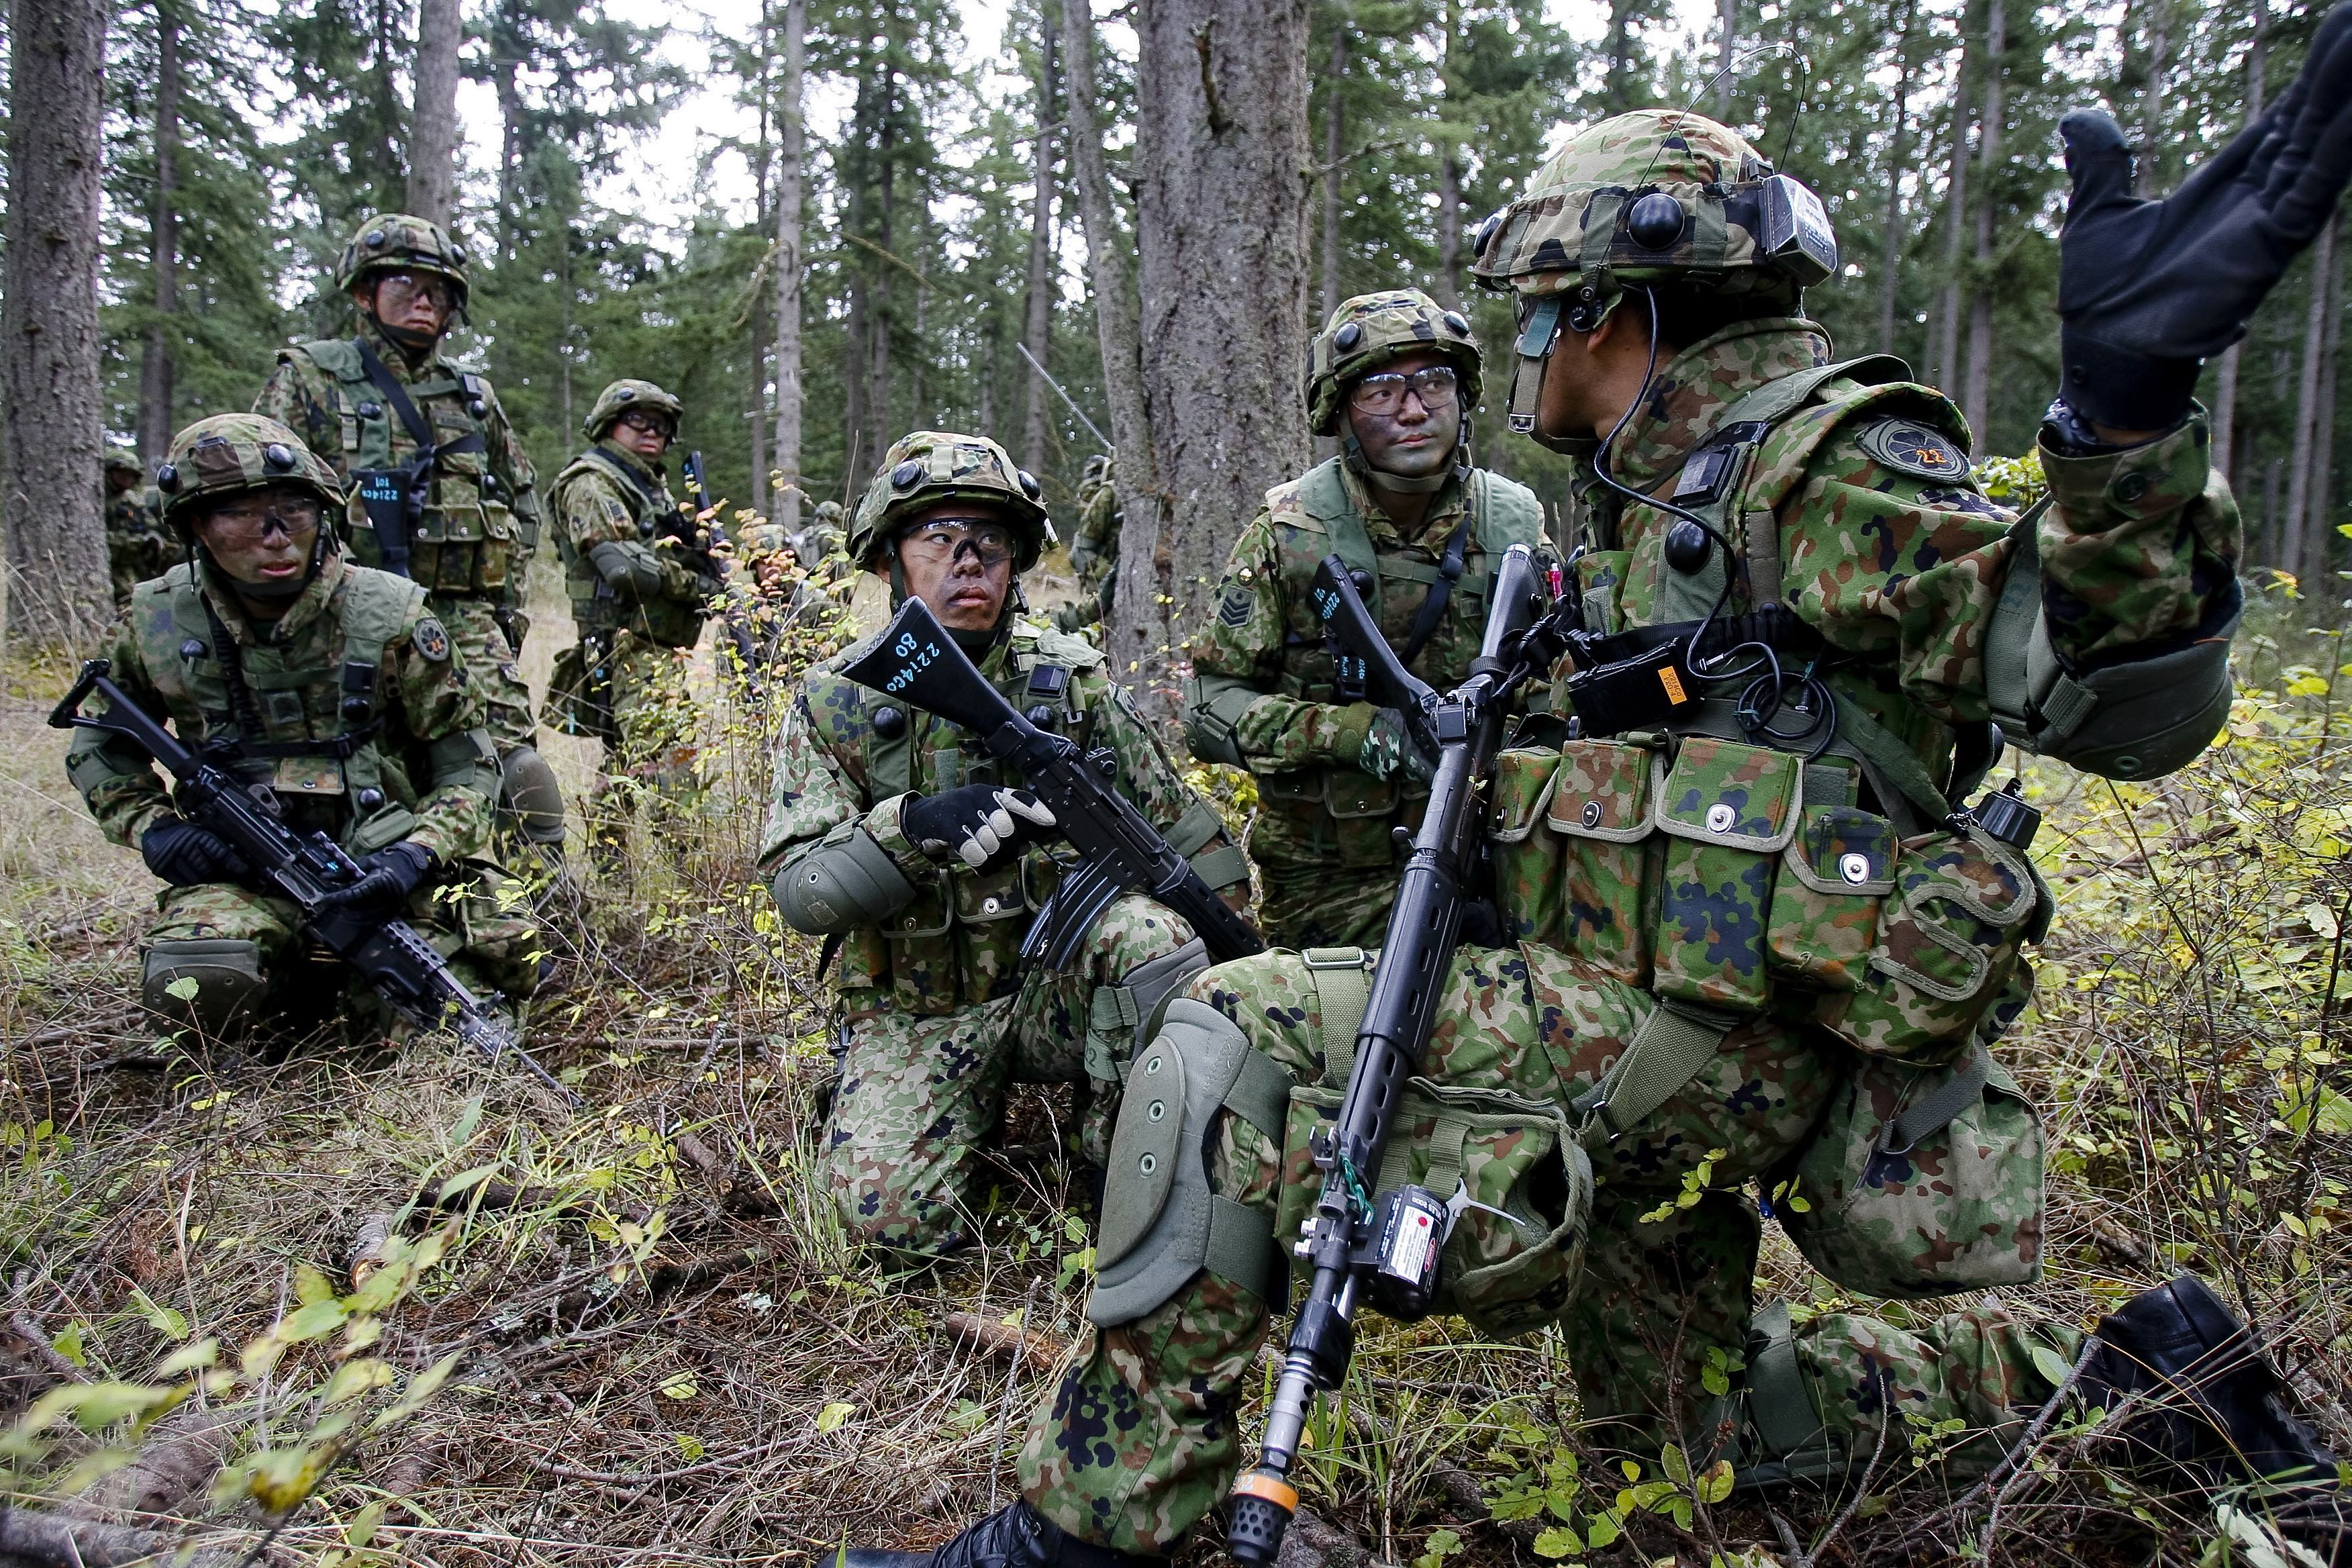 Japanese soldiers from the 22nd Infantry Regiment of the Japan Ground Self-Defense Force train in urban assault with American Soldiers from 1st Battalion, 17th Infantry Regiment, 5th Brigade Oct. 17, 2008 during a bilateral exercise at Fort Lewis' Leschi Town. (via Wikipedia)